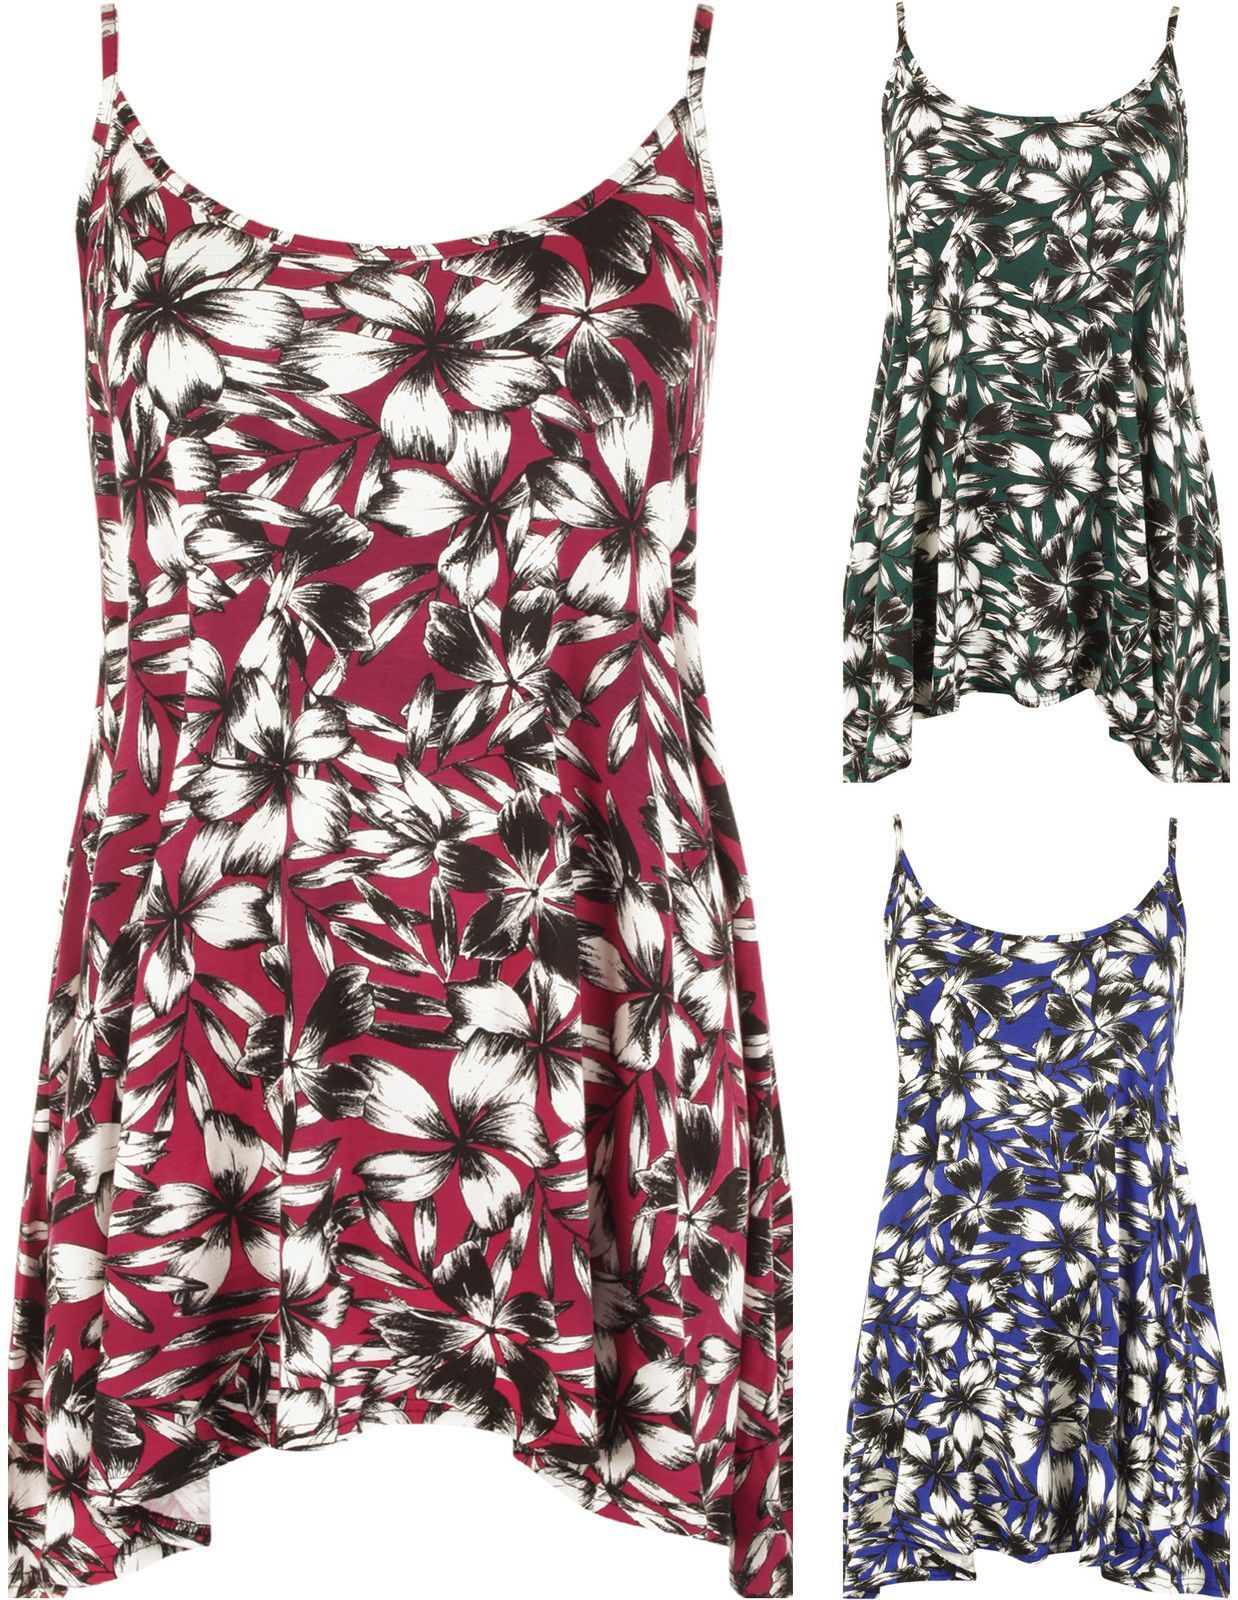 28ebeaed4833 Details about WOMENS PRINTED SWING VEST STRAPPY SLEEVELESS LADIES ...